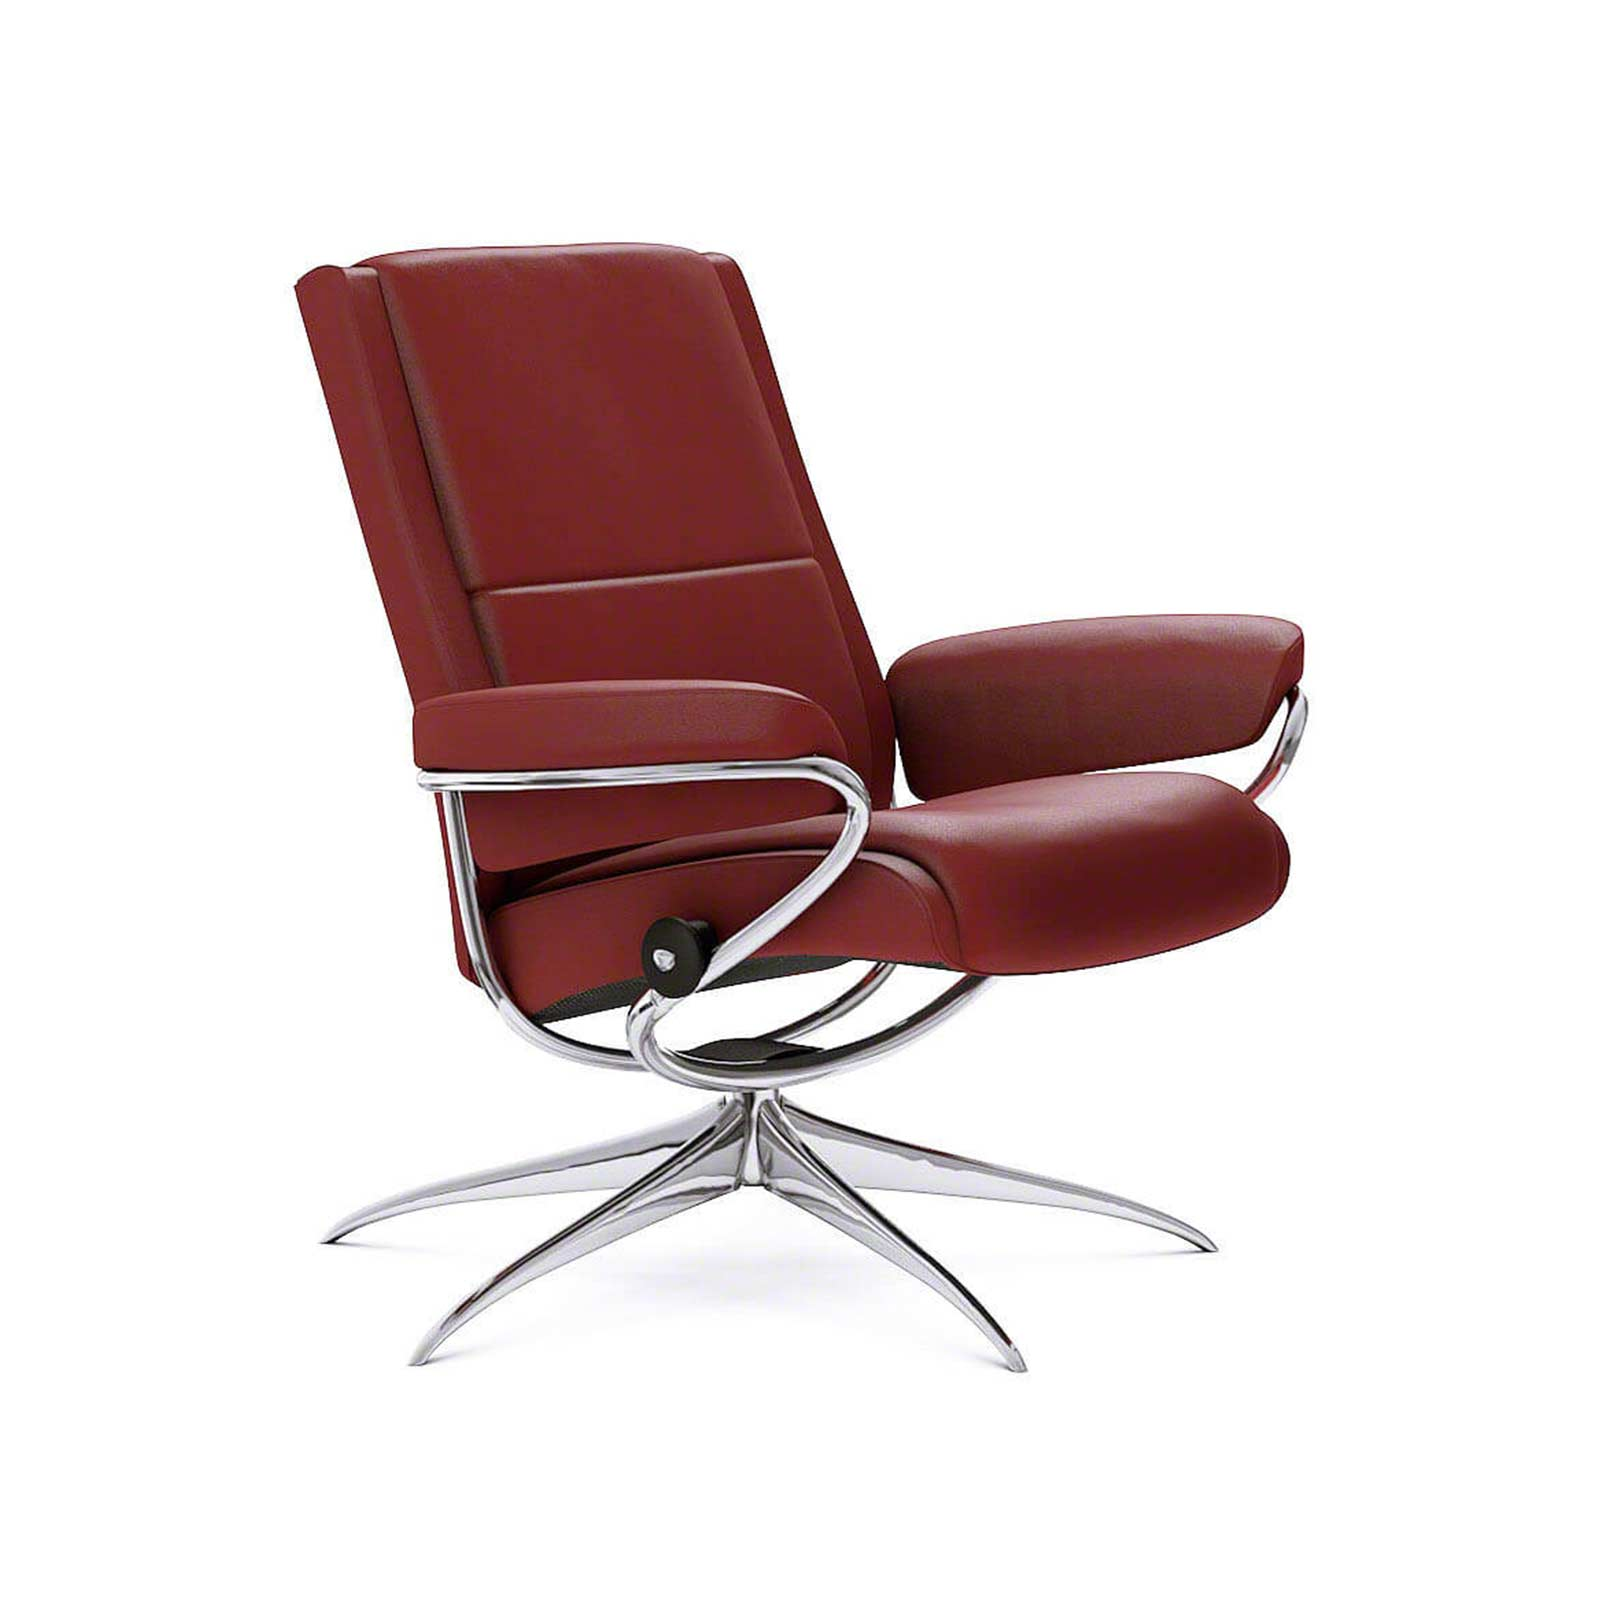 Stressless Angebote Stressless Angebote Relaxsessel Stressless Online Shop